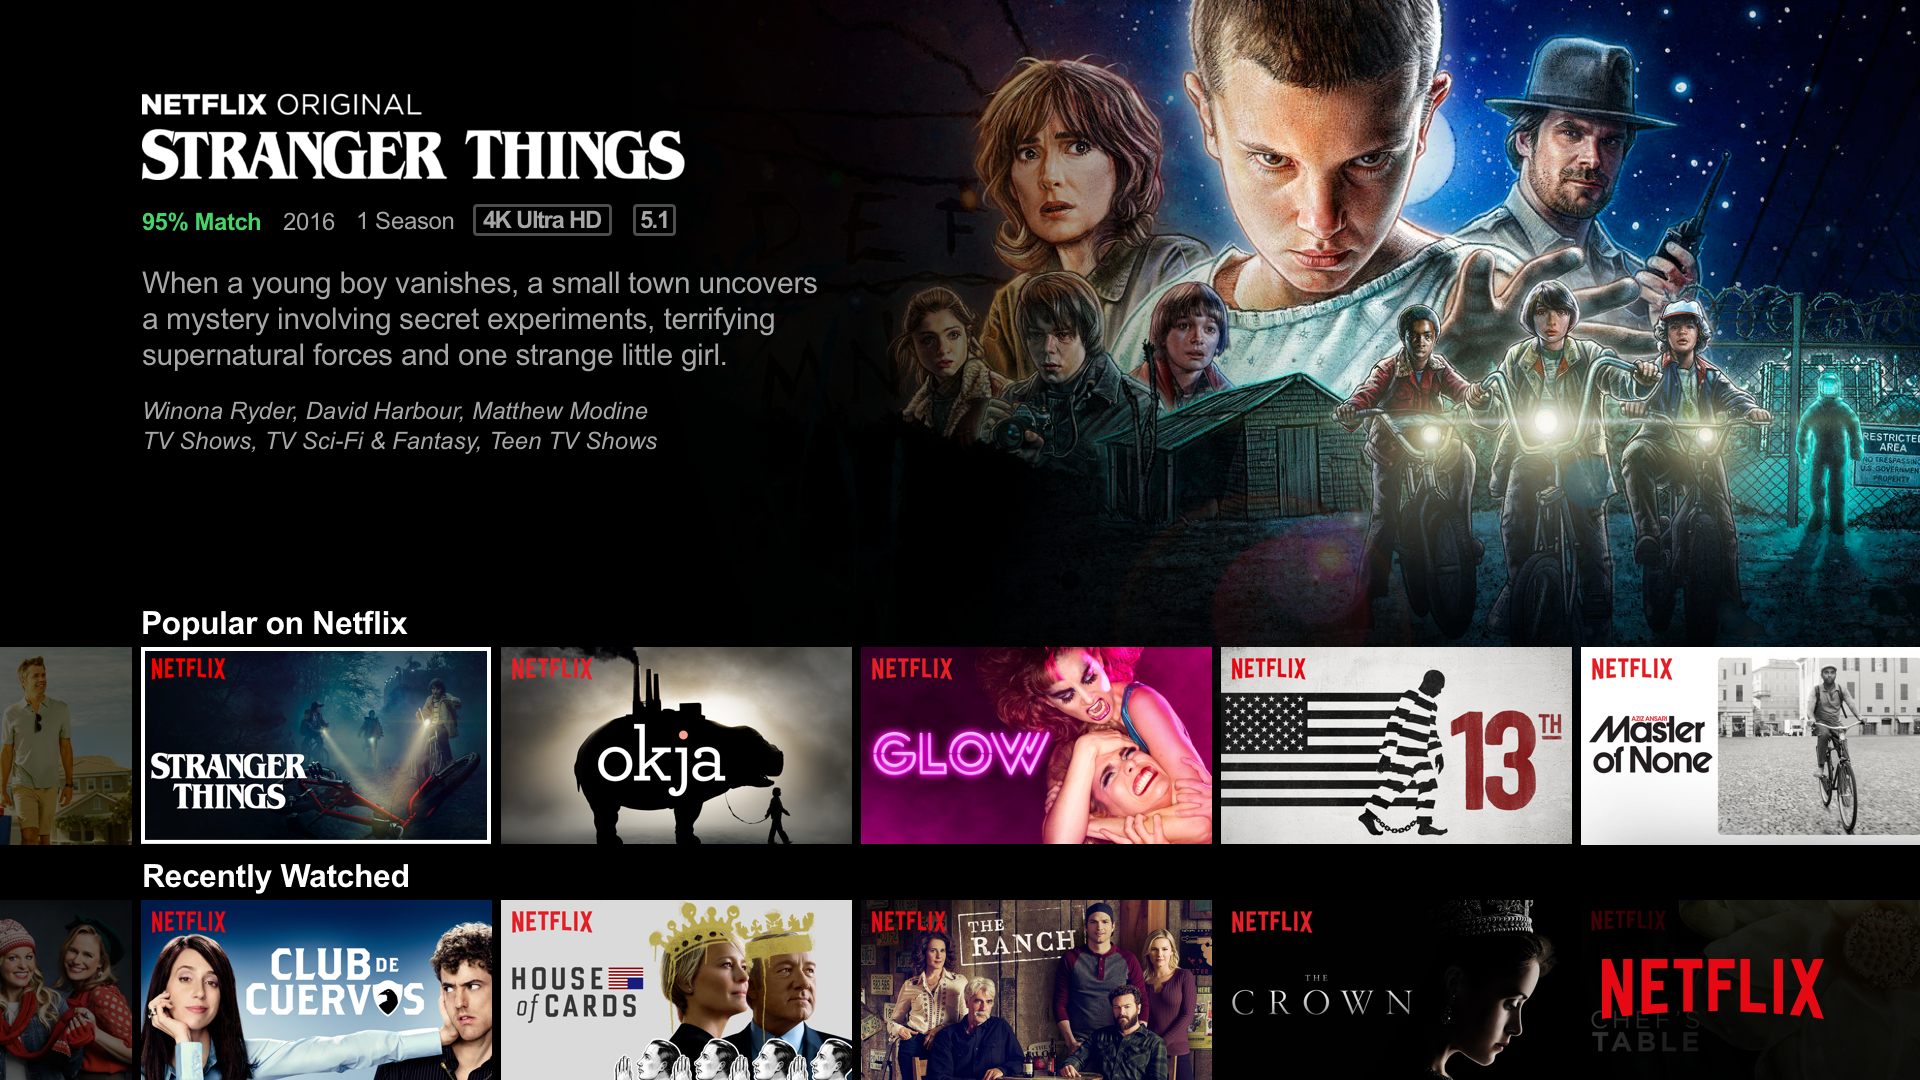 Netflix Doubles Down on Movies as Hollywood Remains Locked in Theatrical Chains